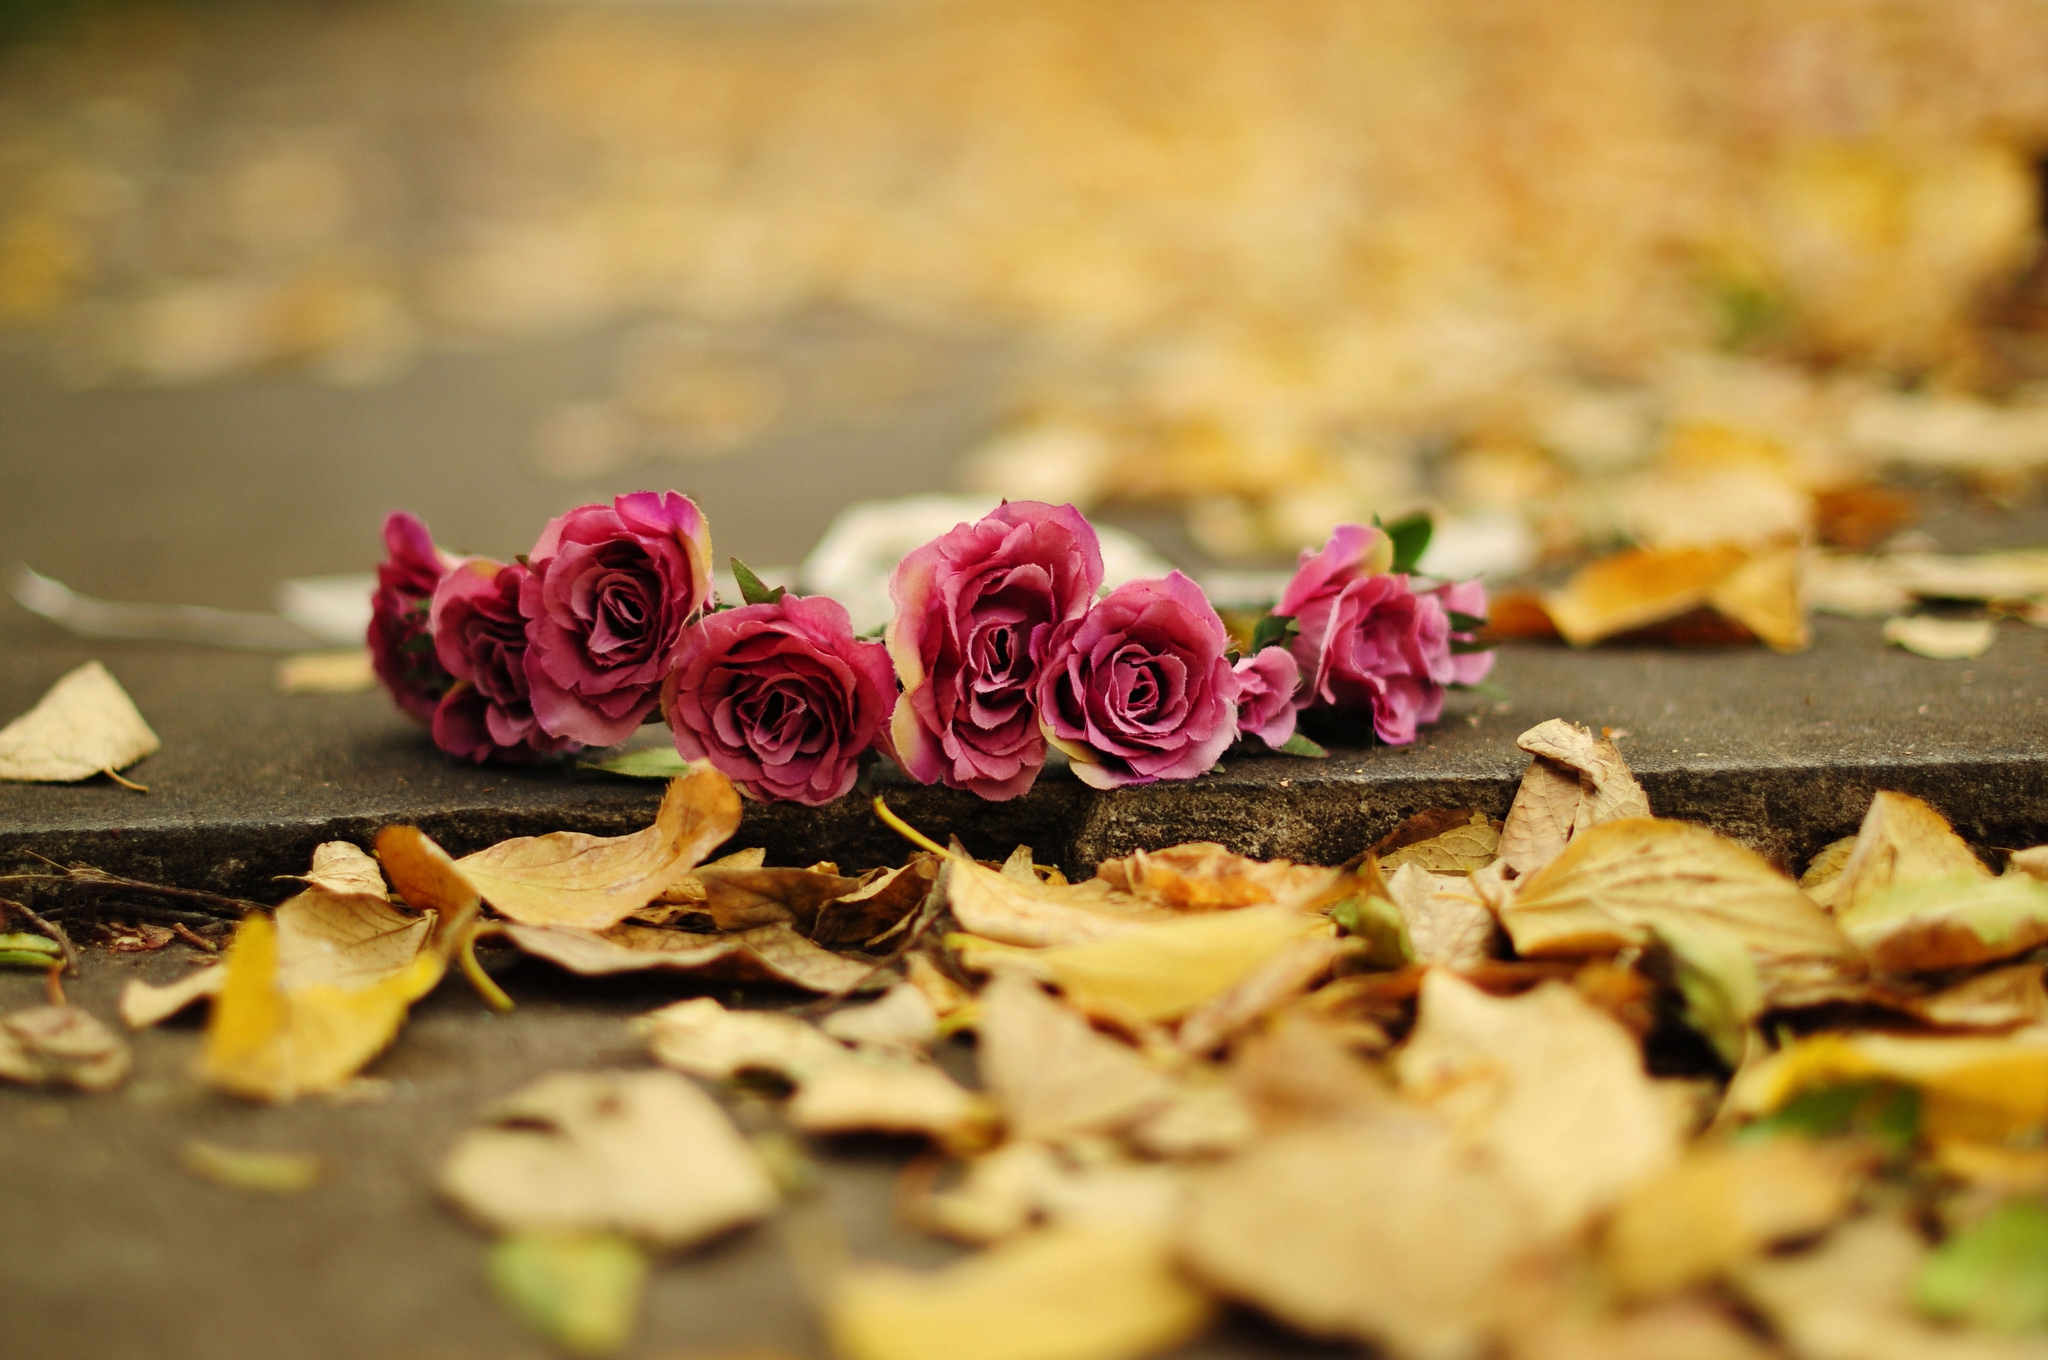 Autumn Flower Wallpaper